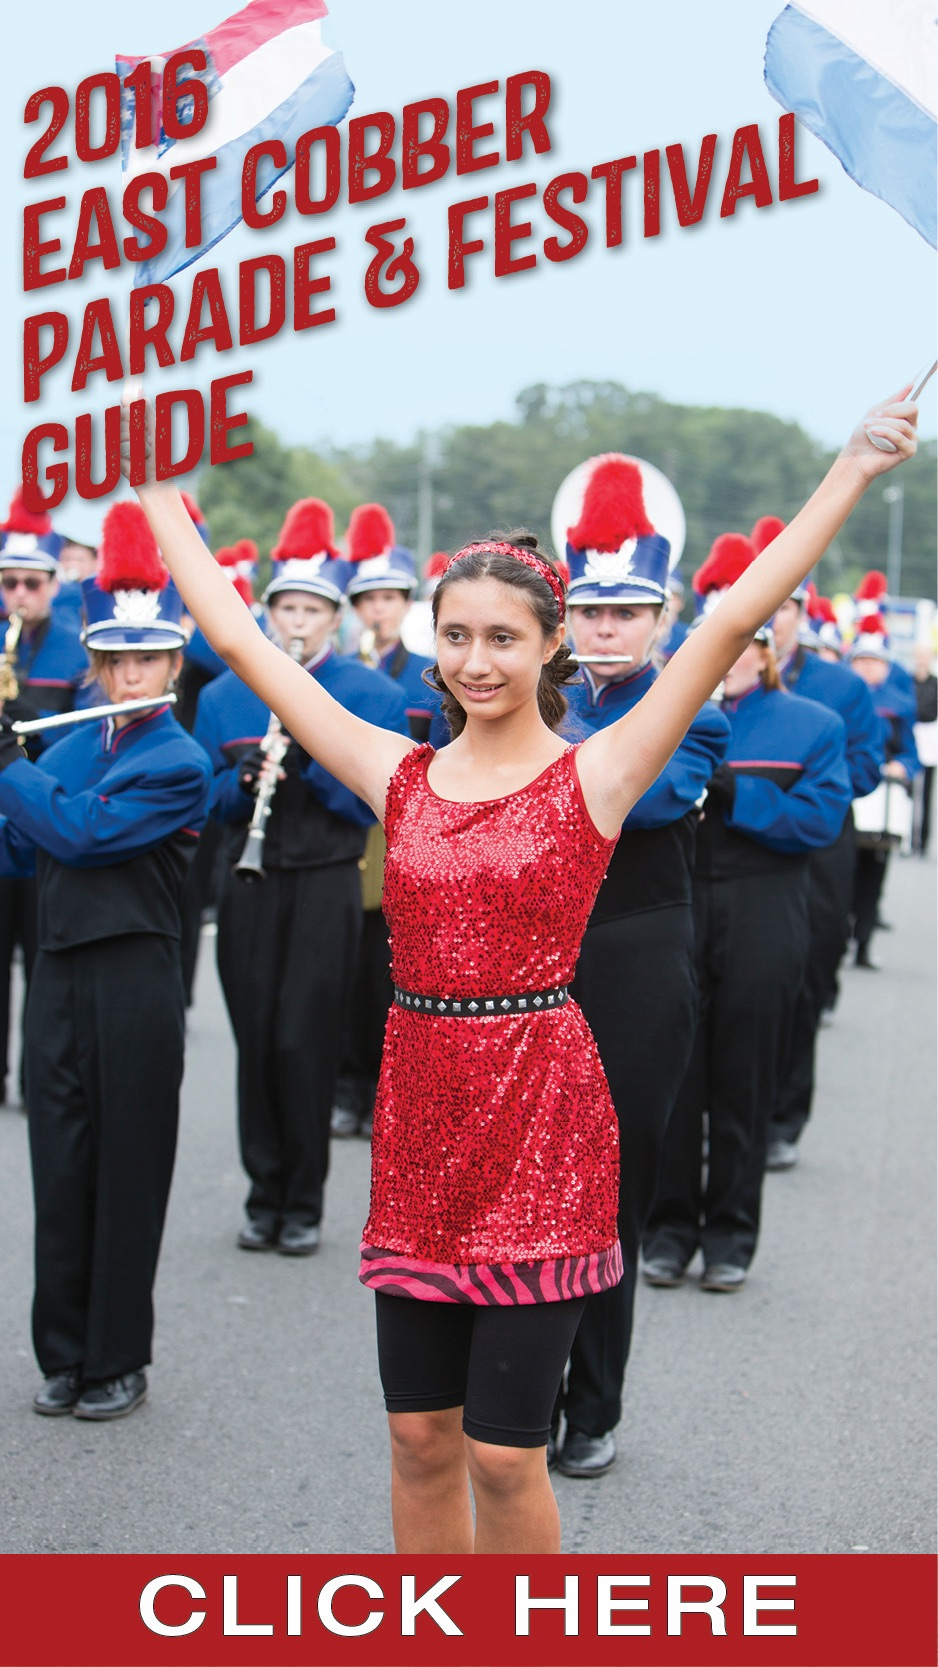 EastCobber Parade & Festival Guide 2016